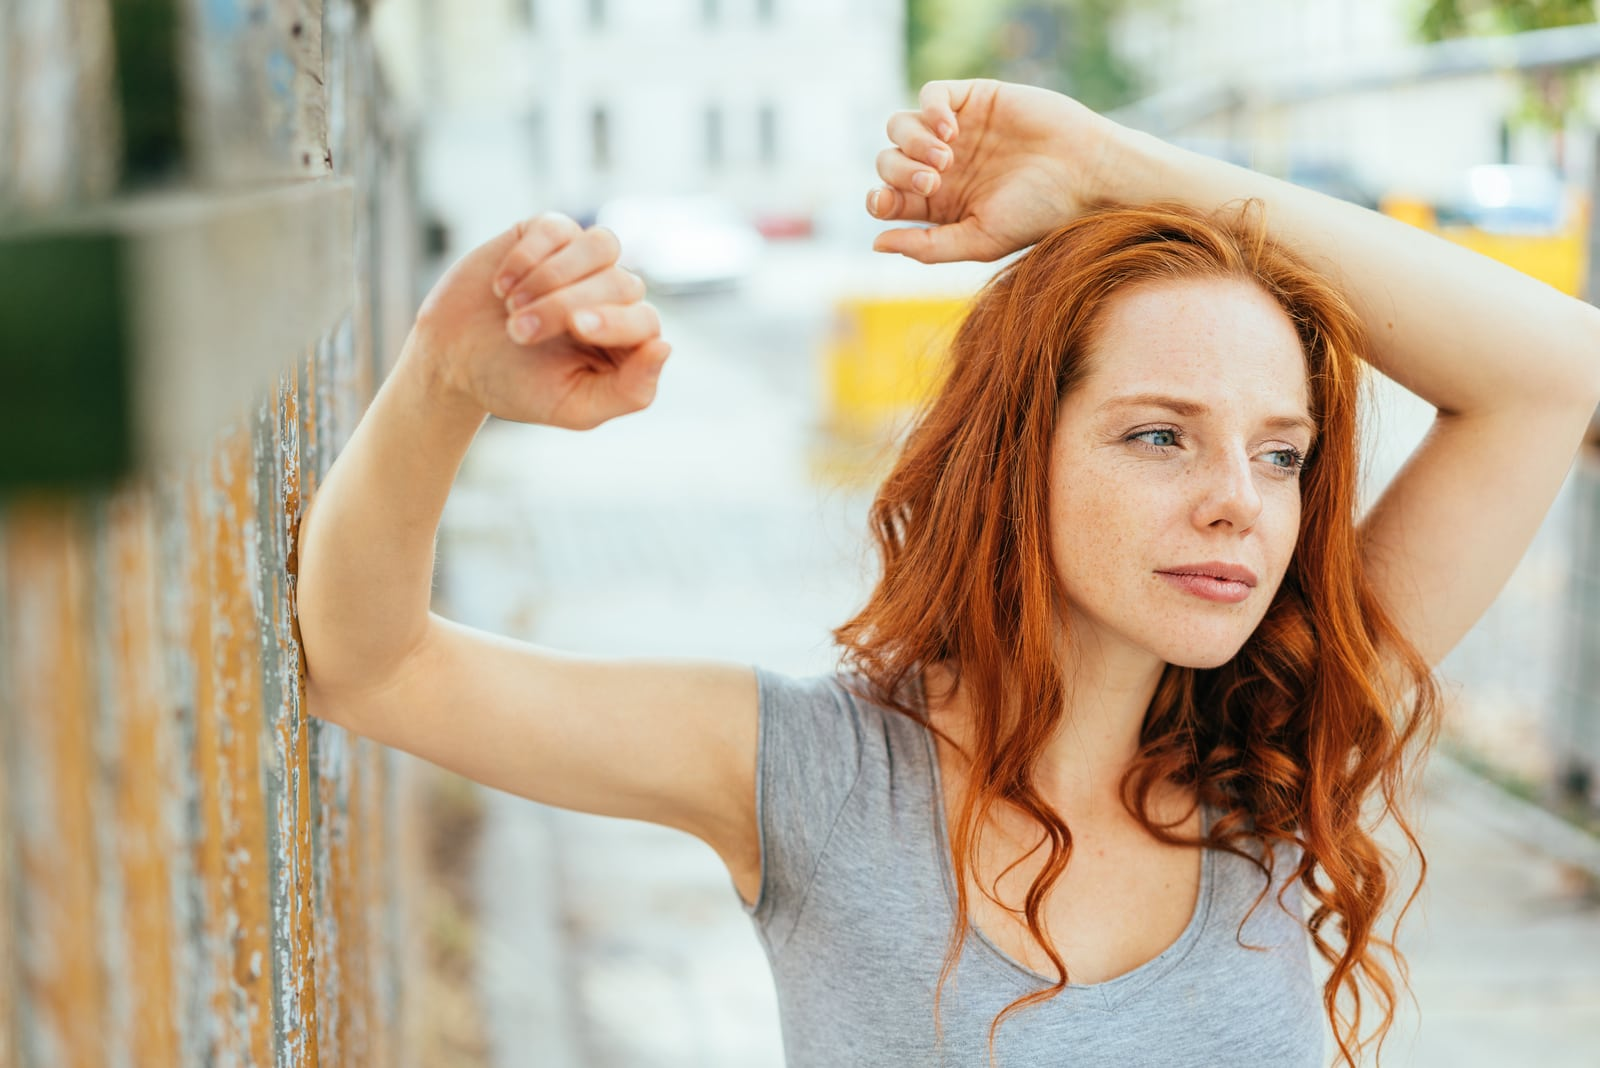 Thoughtful young woman with long red hair